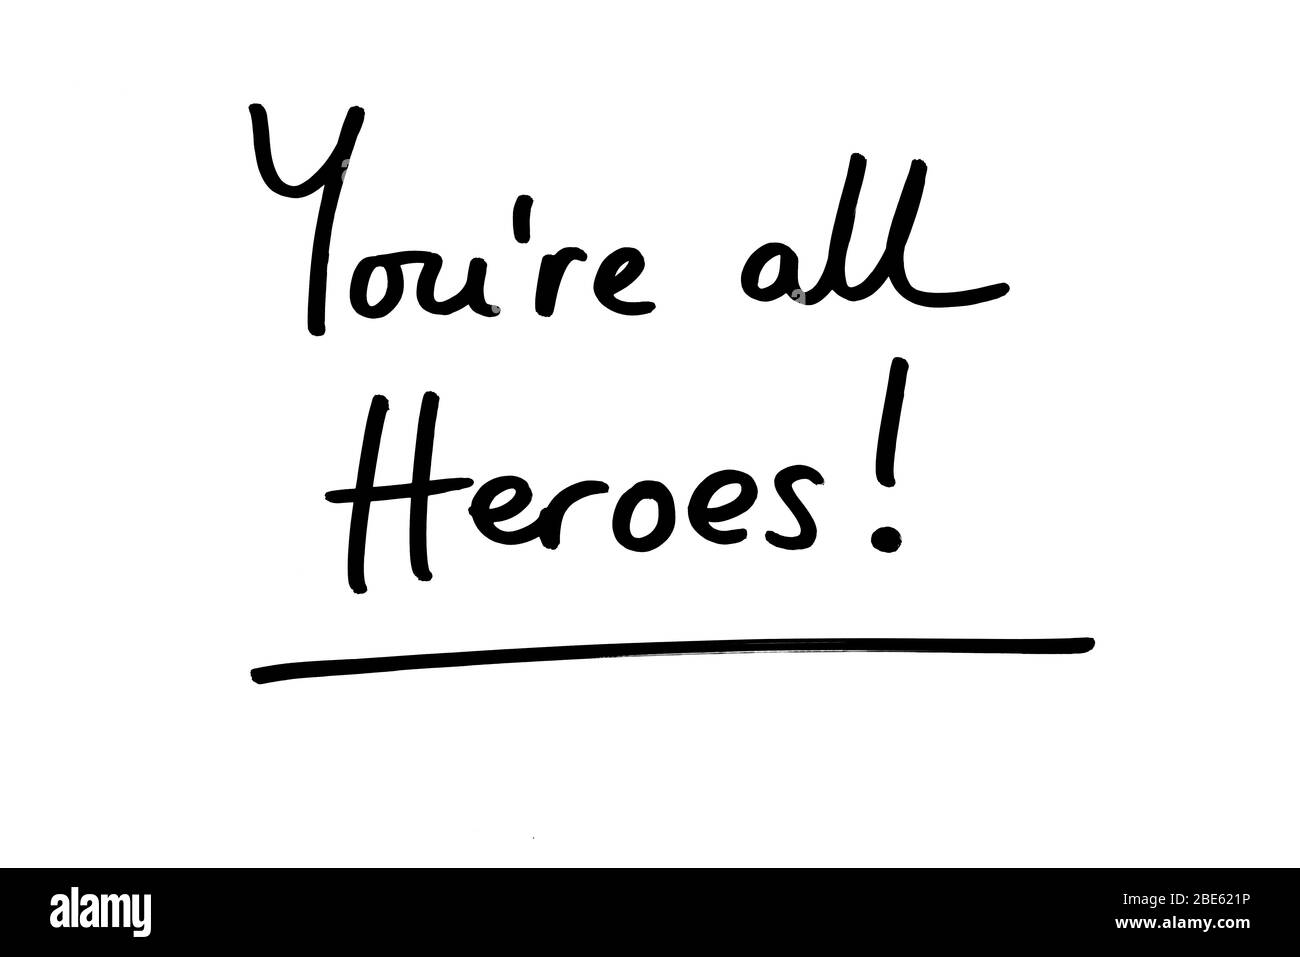 Youre all Heroes! handwritten on a white background. Stock Photo